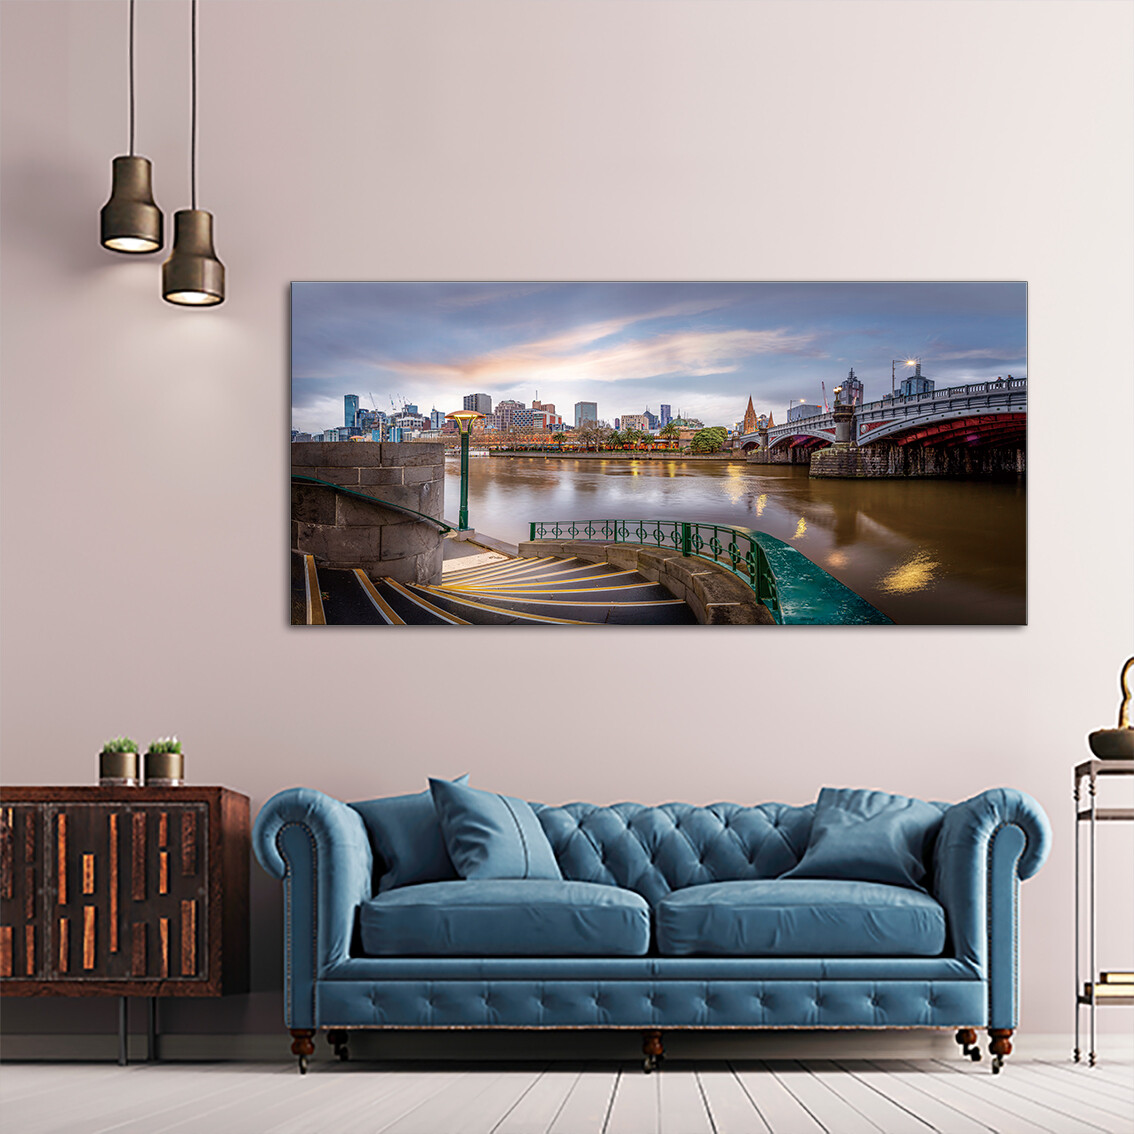 Melbourne Skyline  - Modern Luxury Wall art Printed on Acrylic Glass - Frameless and Ready to Hang